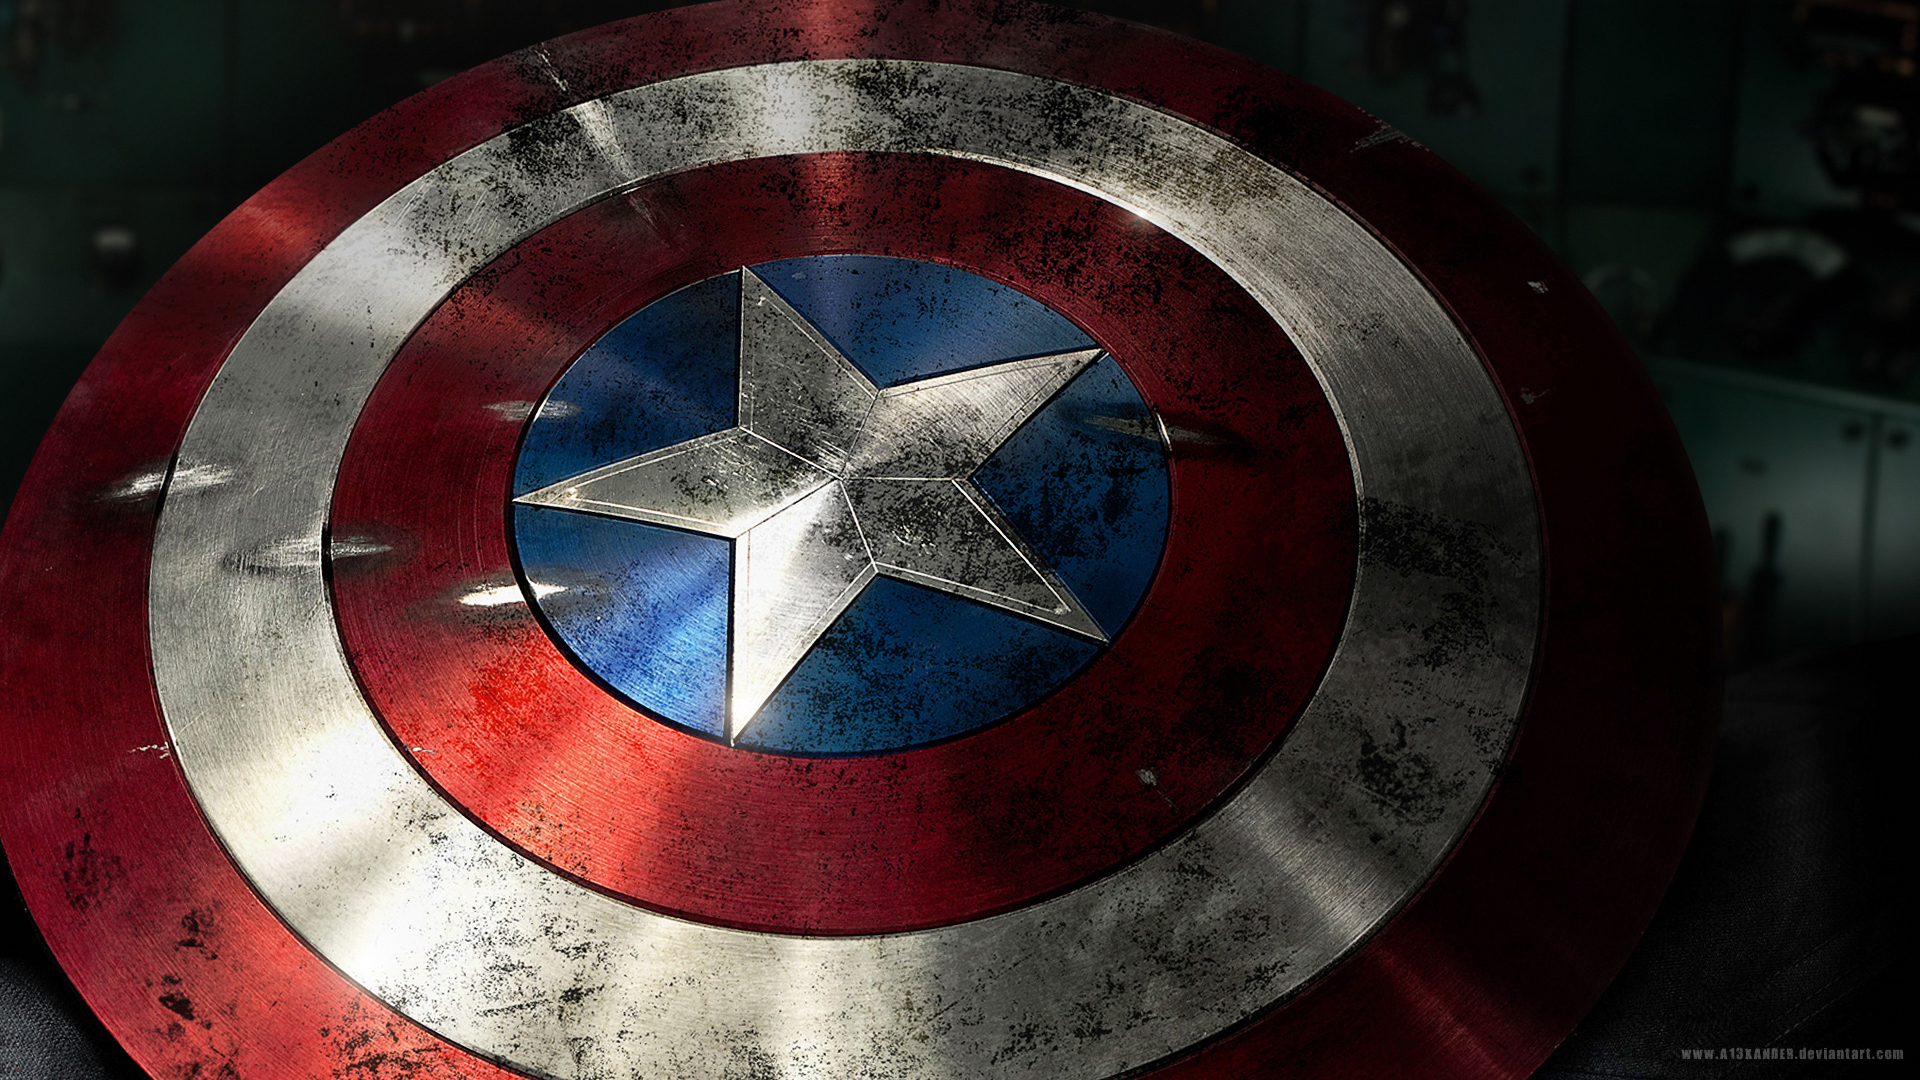 19086 download wallpaper Cinema, Captain America screensavers and pictures for free